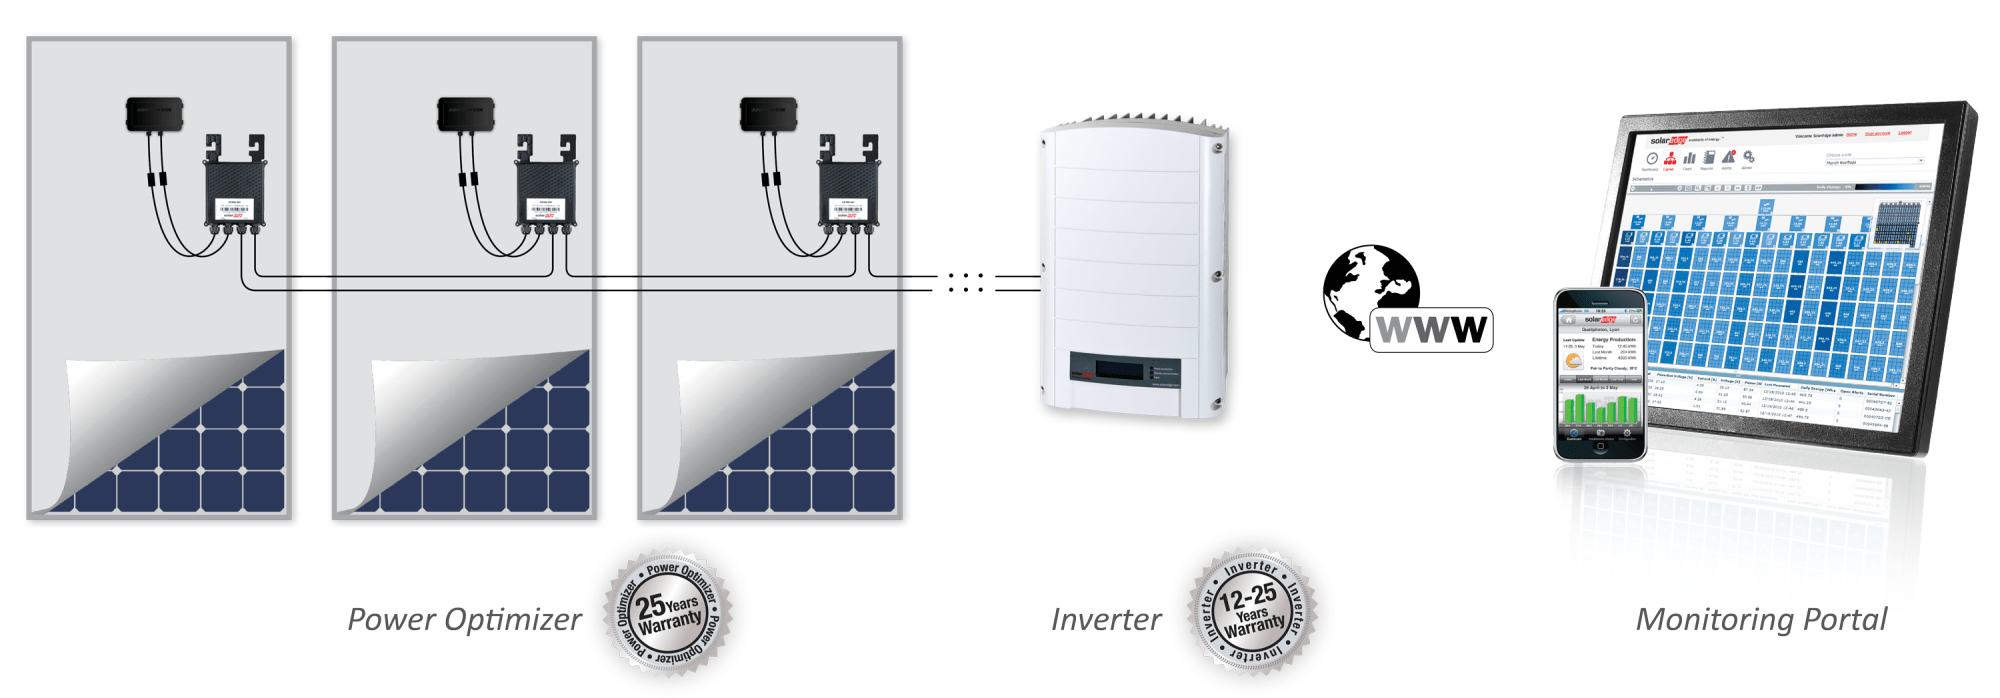 hight resolution of solaredge logo solaredge inverters optimisers